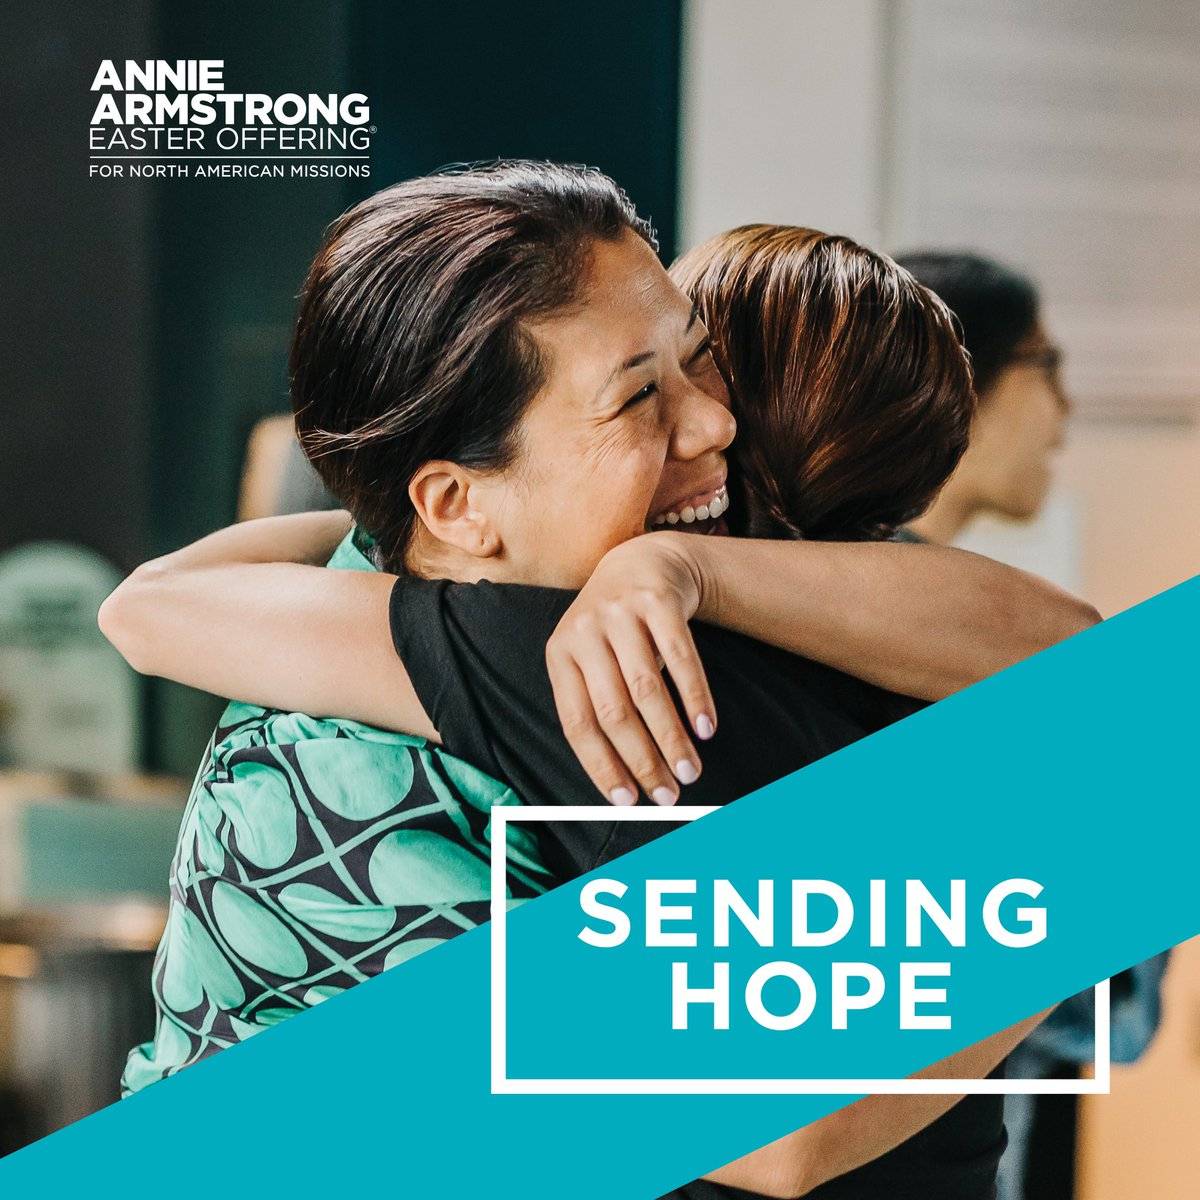 test Twitter Media - This weekend, a small group from Gateway Community Church sorted 60,000 Annie Armstrong Easter Offering envelopes in 38 minutes! That's a record!  To find out more about Annie Armstrong Easter Offering, visit https://t.co/jijcouP3UA! https://t.co/GUxxWrf0br